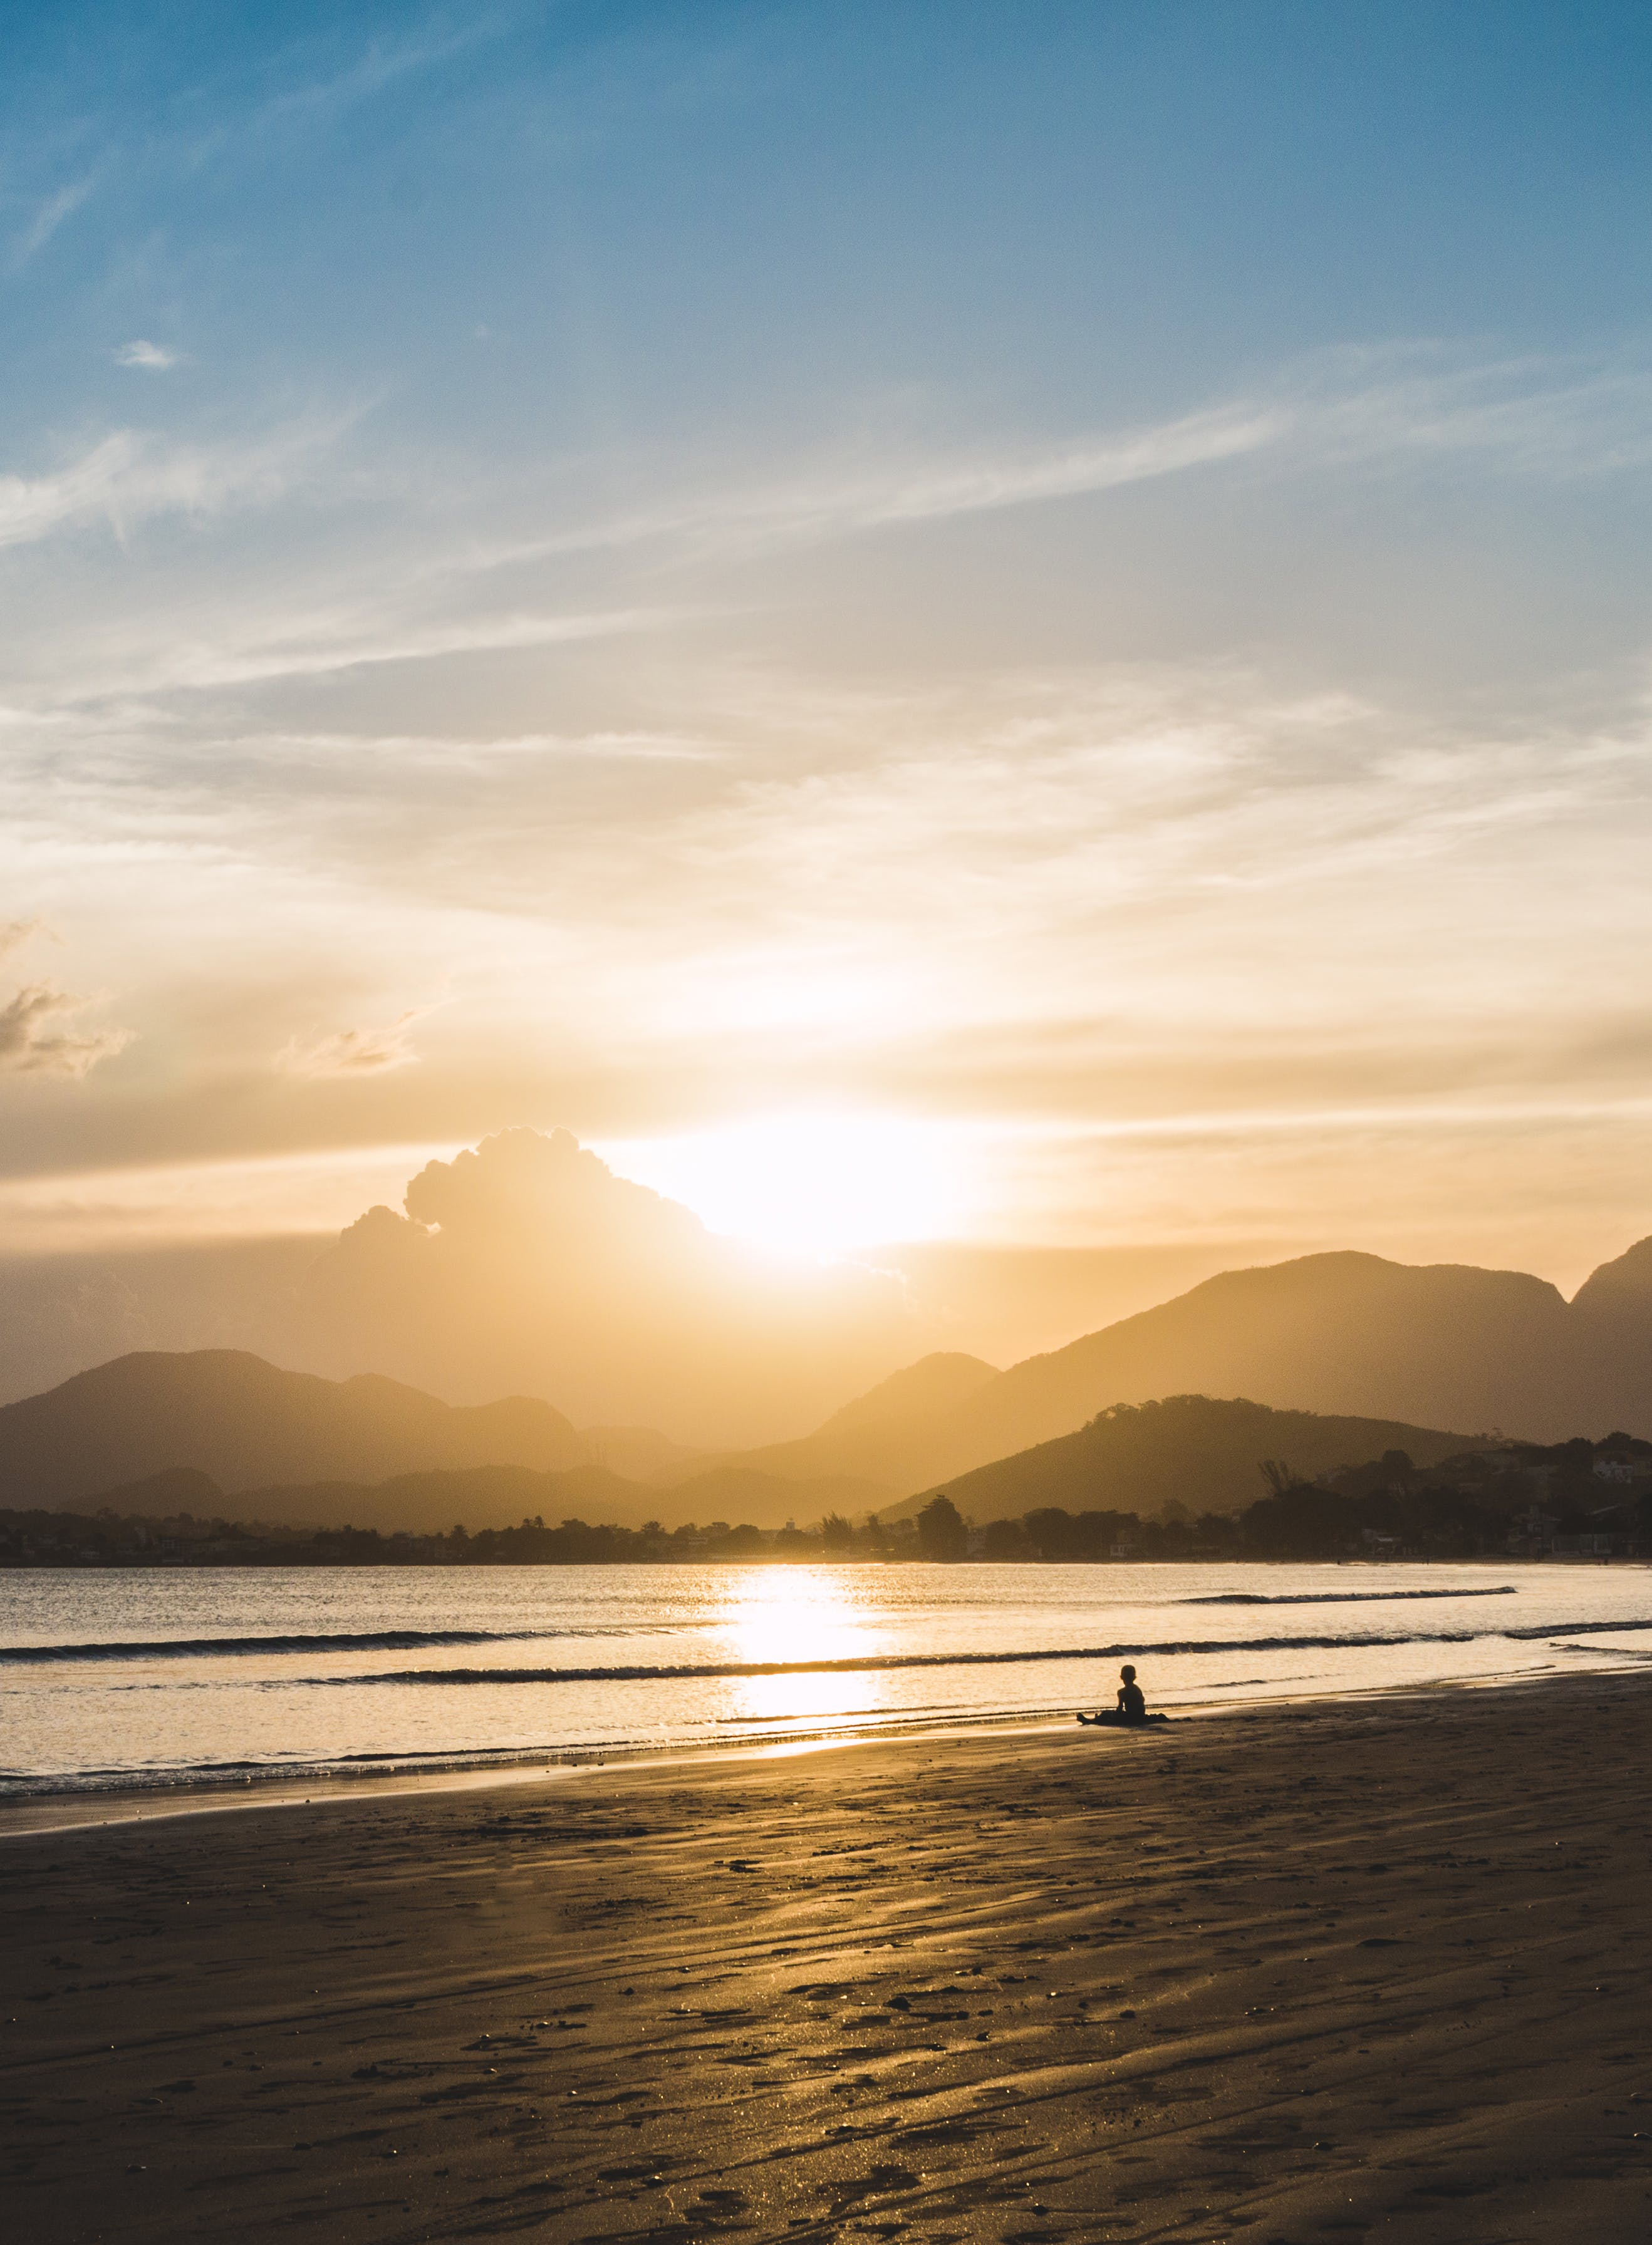 Person Sitting on Beach during Golden Hour